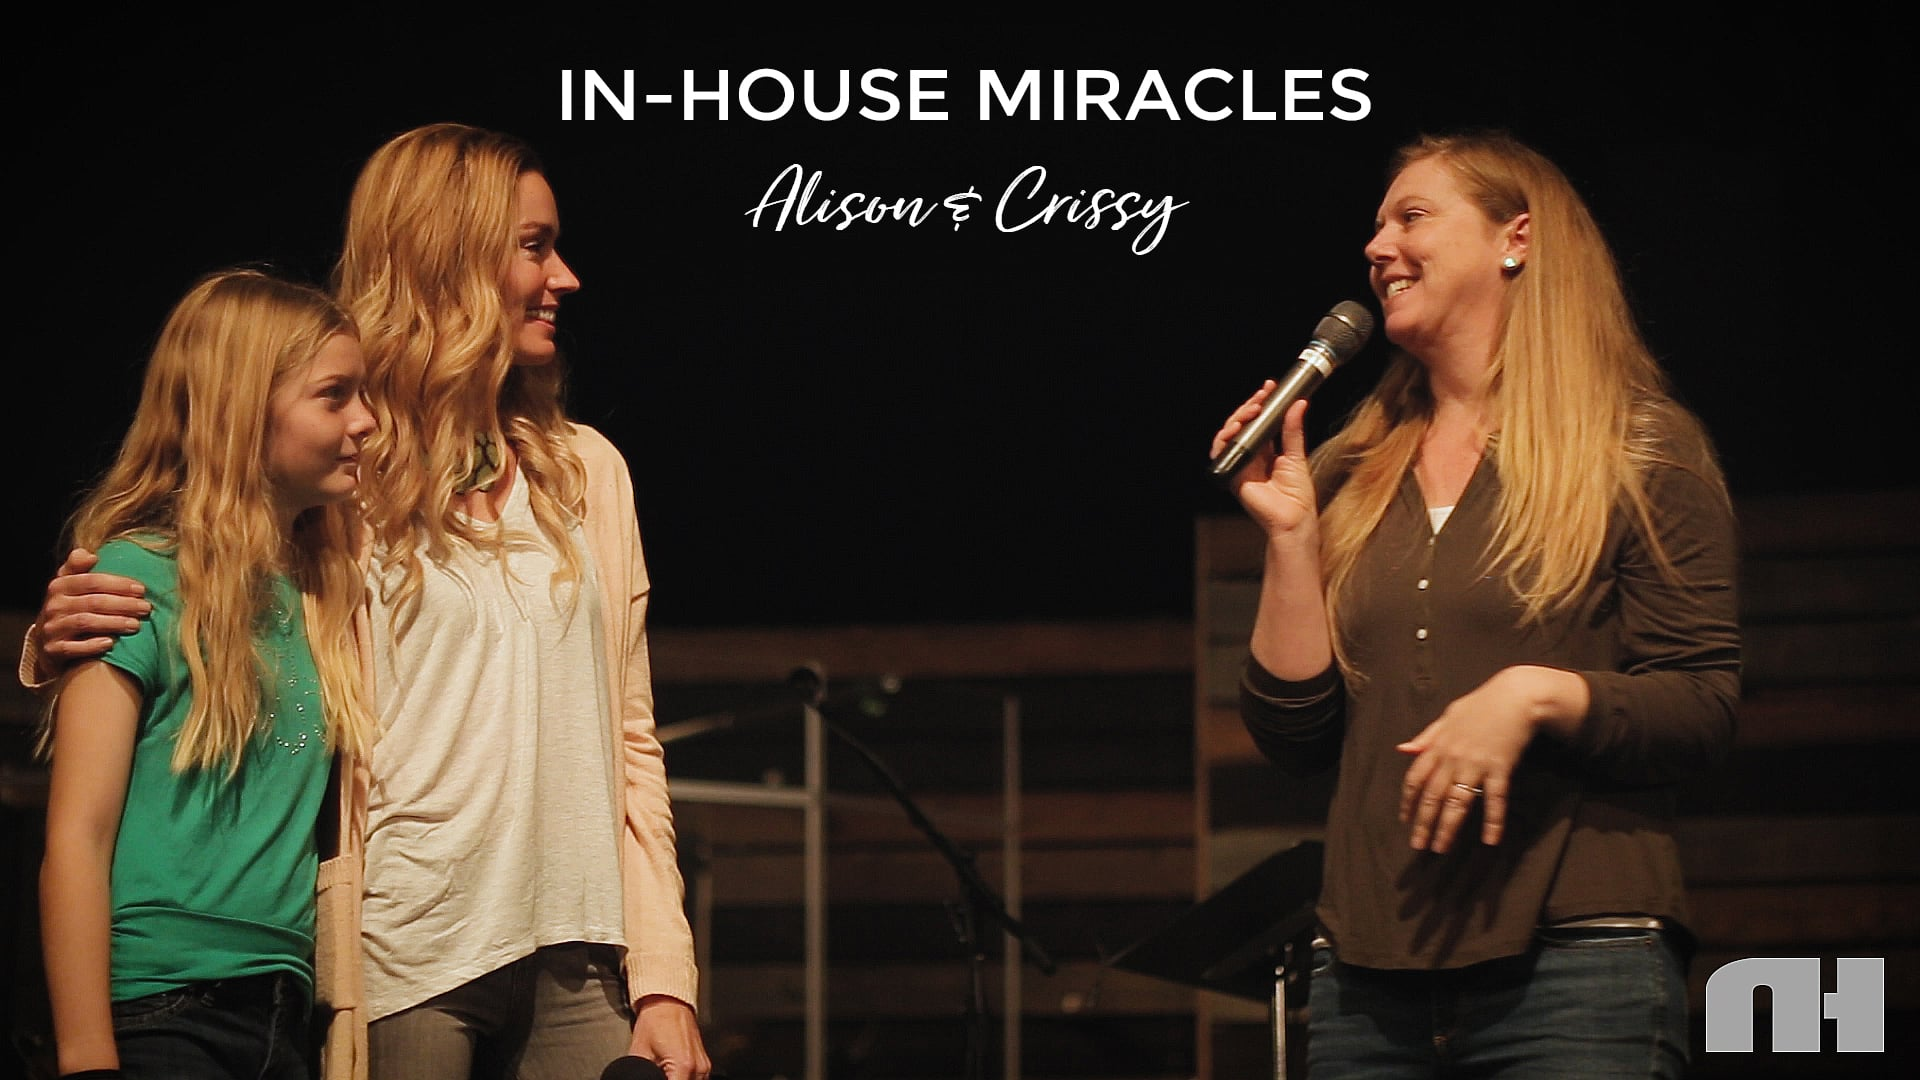 In-House Miracles: Crissy and Alison